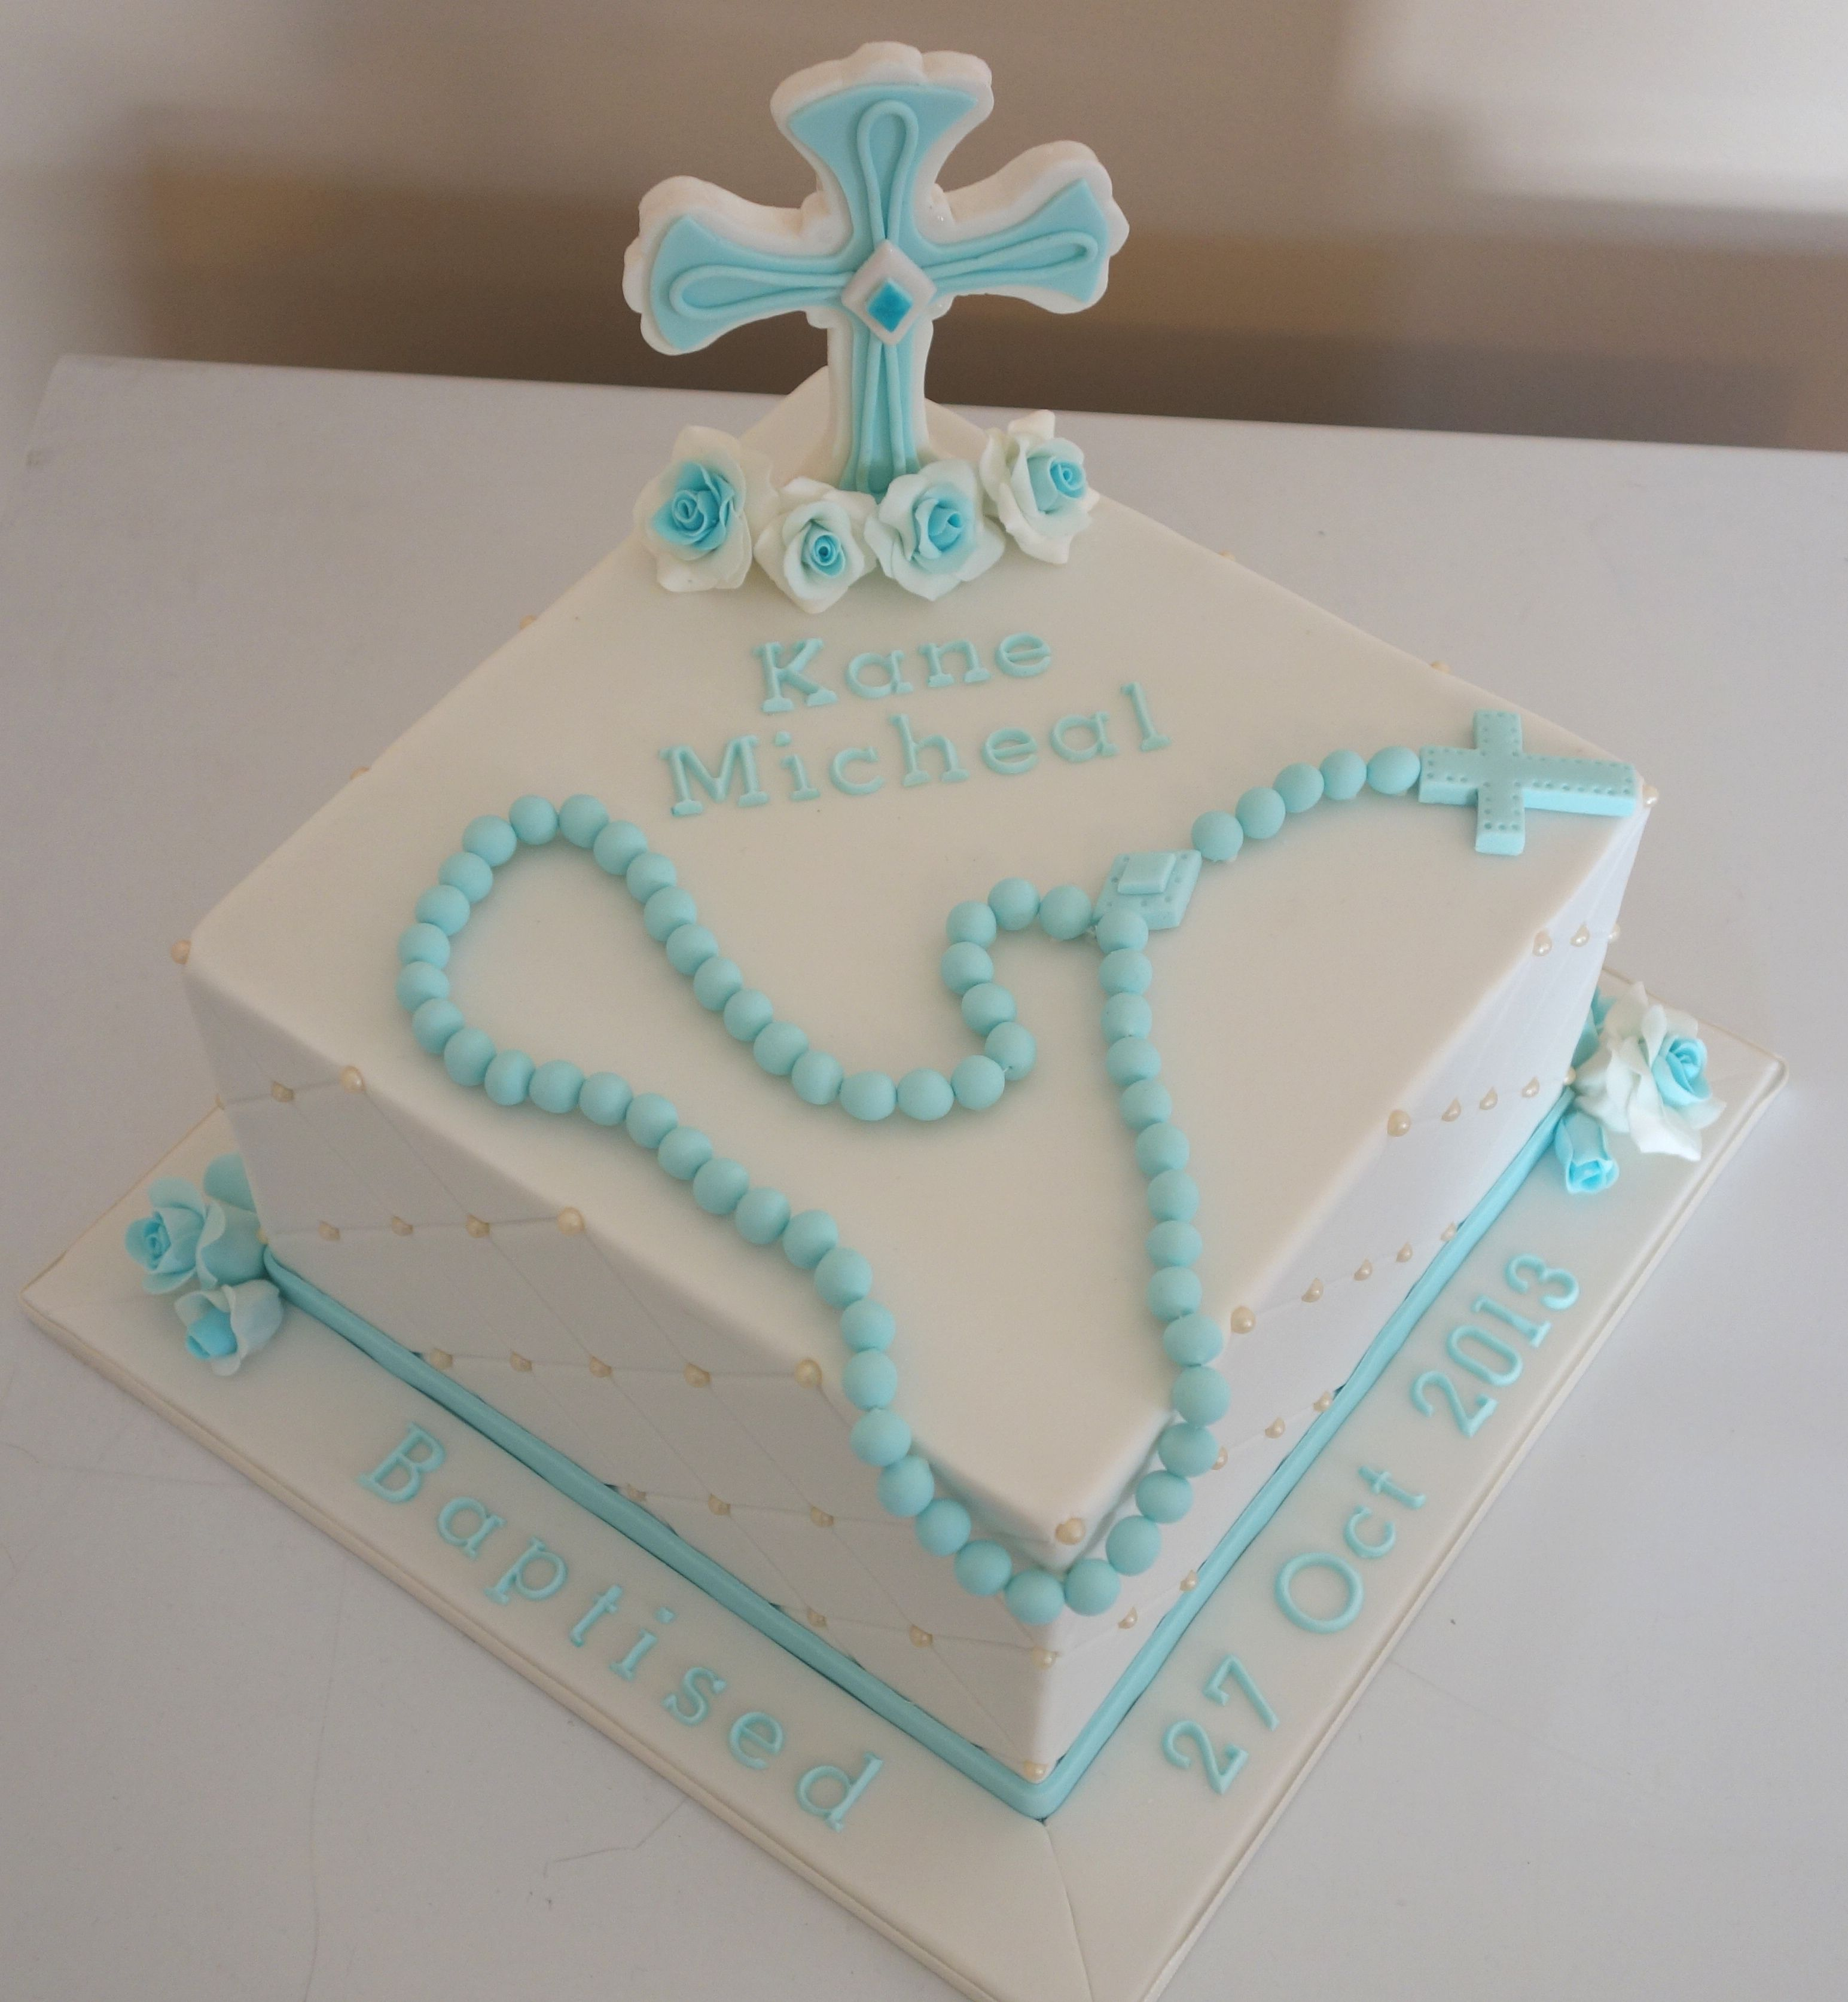 Catholic Baptism Cake With Hand Made Rosary Beads Cross And Roses